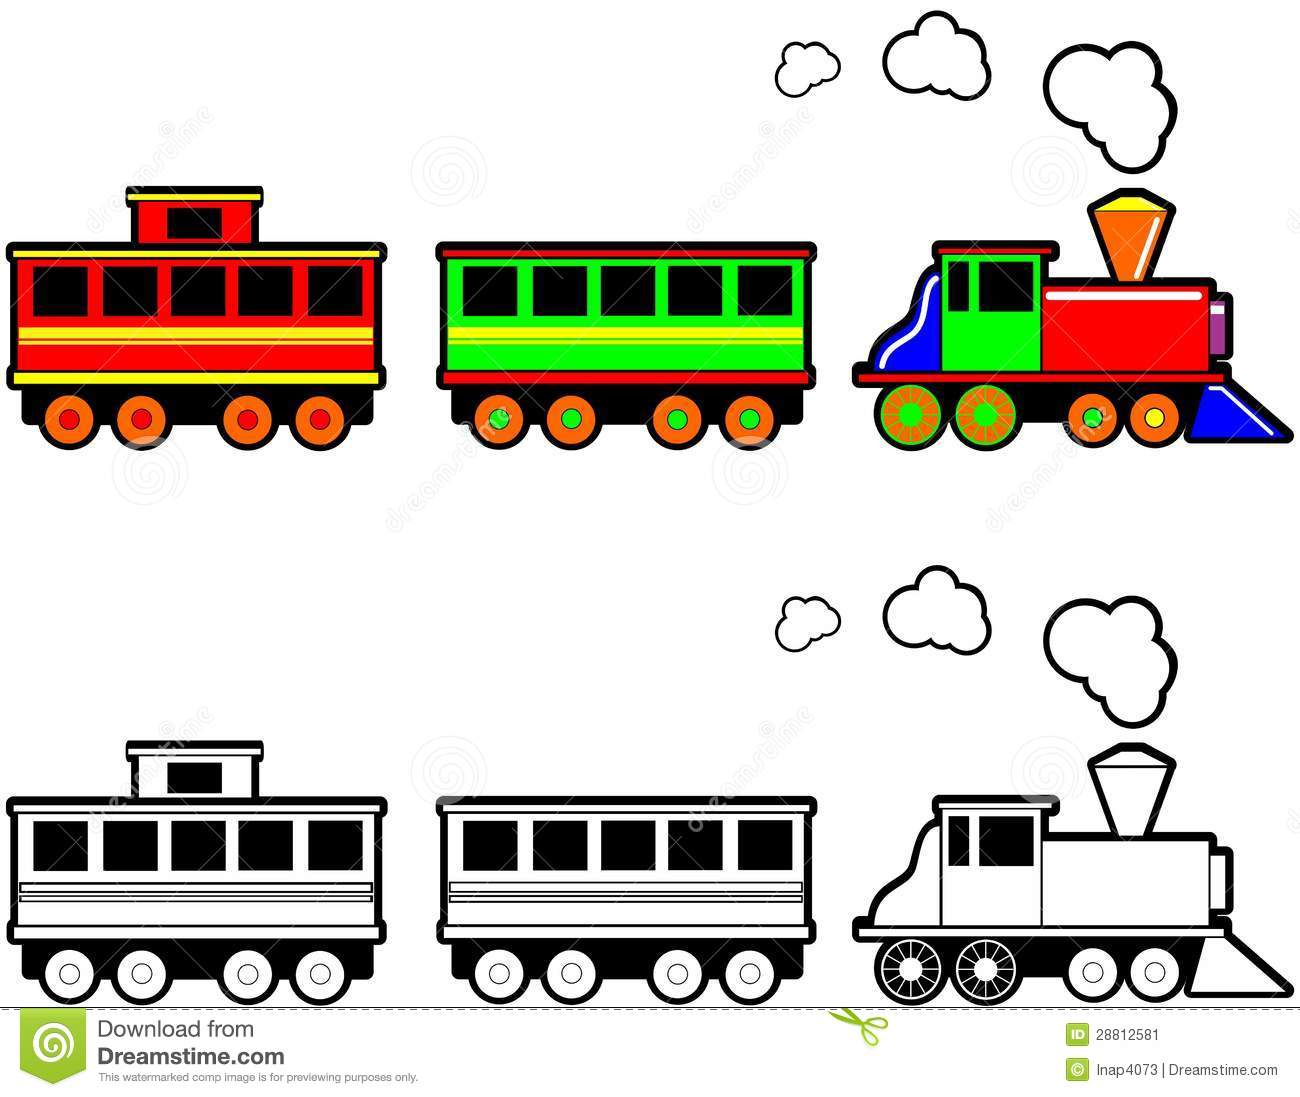 Train Caboose Clipart at GetDrawings | Free download